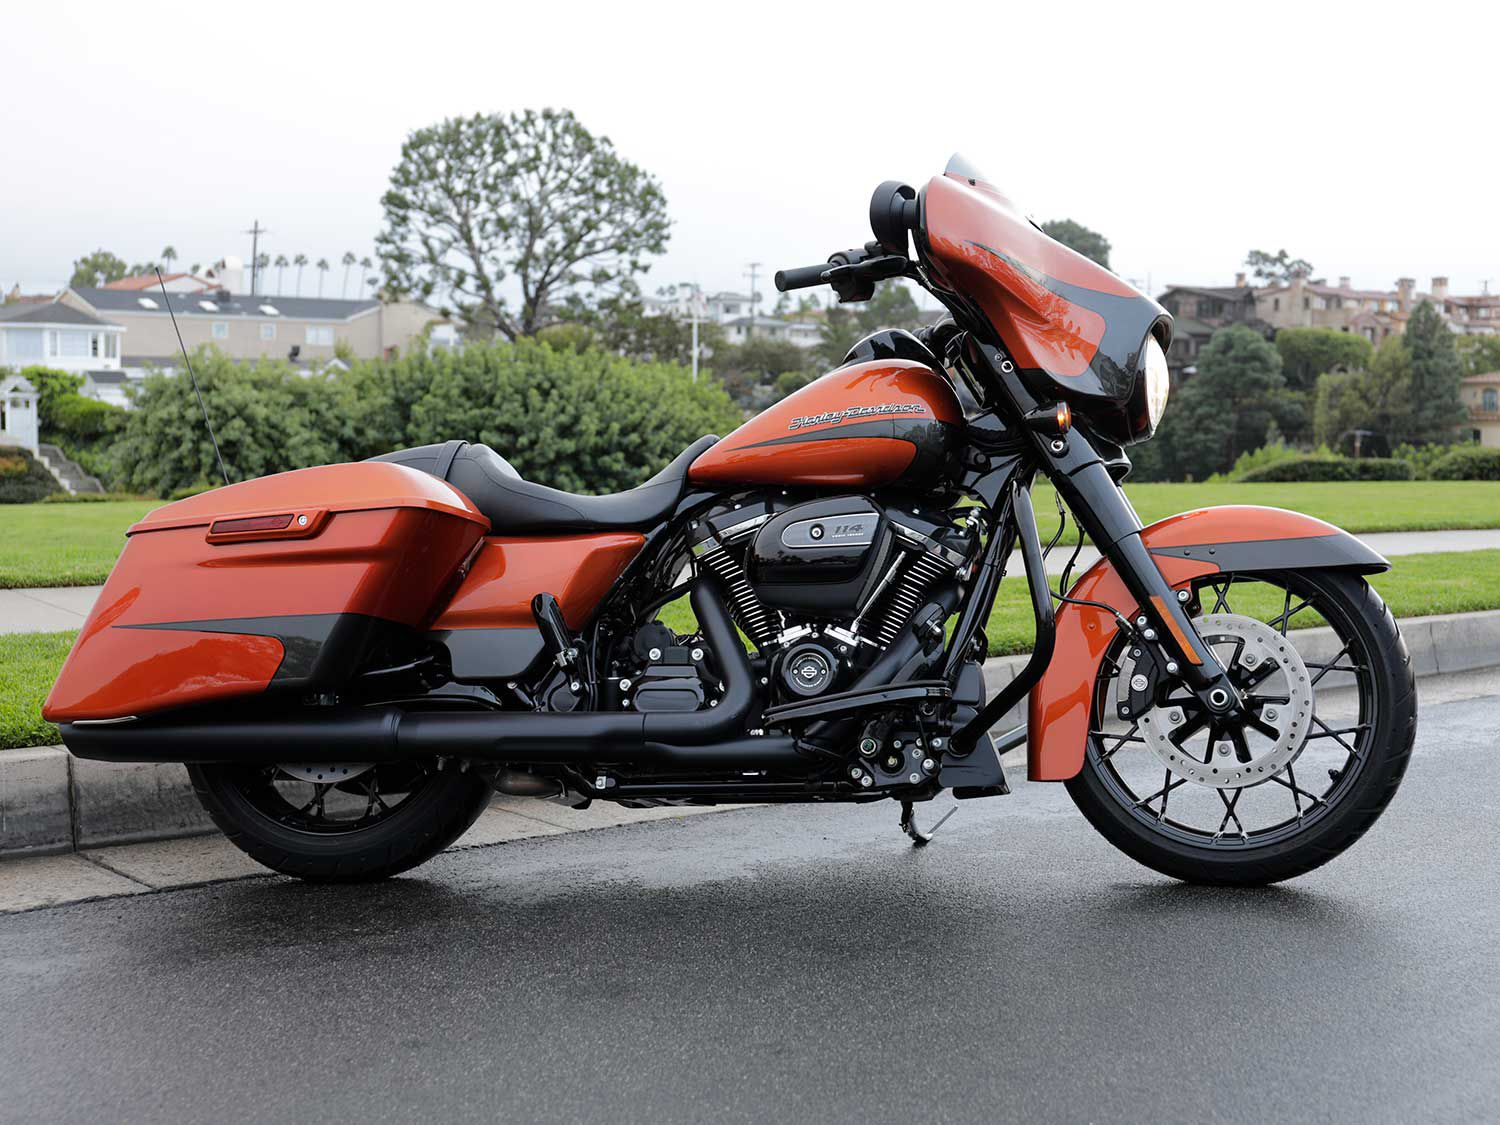 Harley-Davidson's 2020 Street Glide Special stars in this episode of <em>MC Commute</em>.